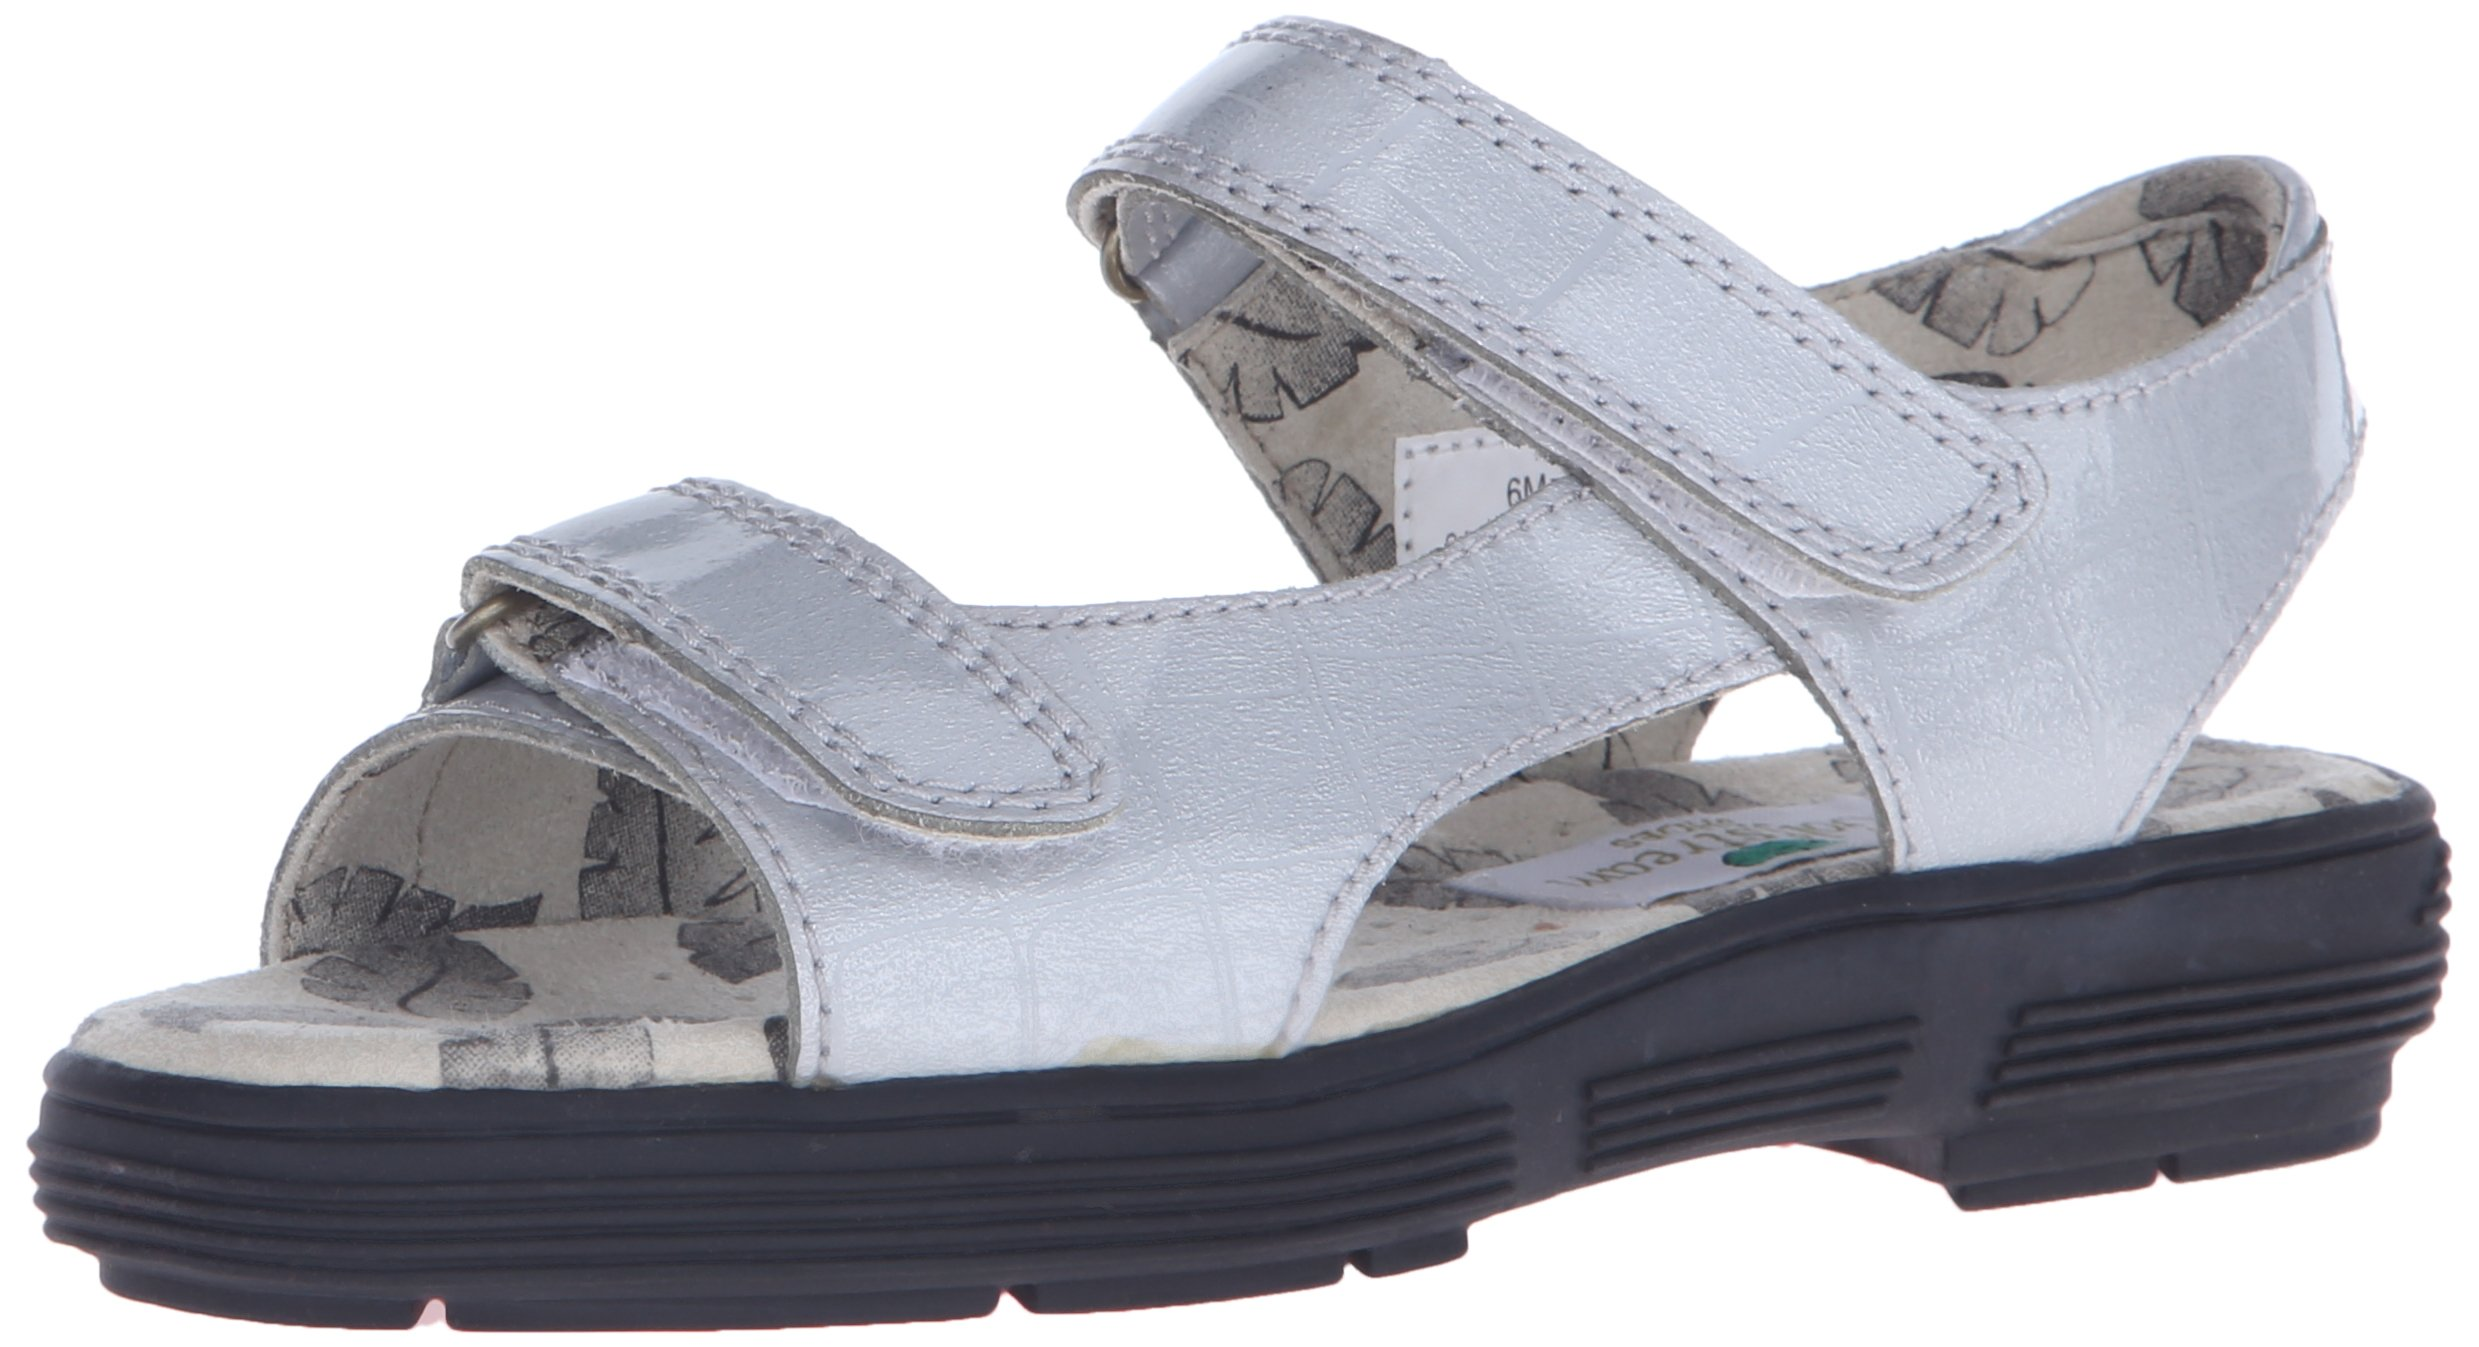 Golfstream Women's Two Strap Sandal Golf Shoe, Tuscany Faux Crocodile/Silver, 5 M US